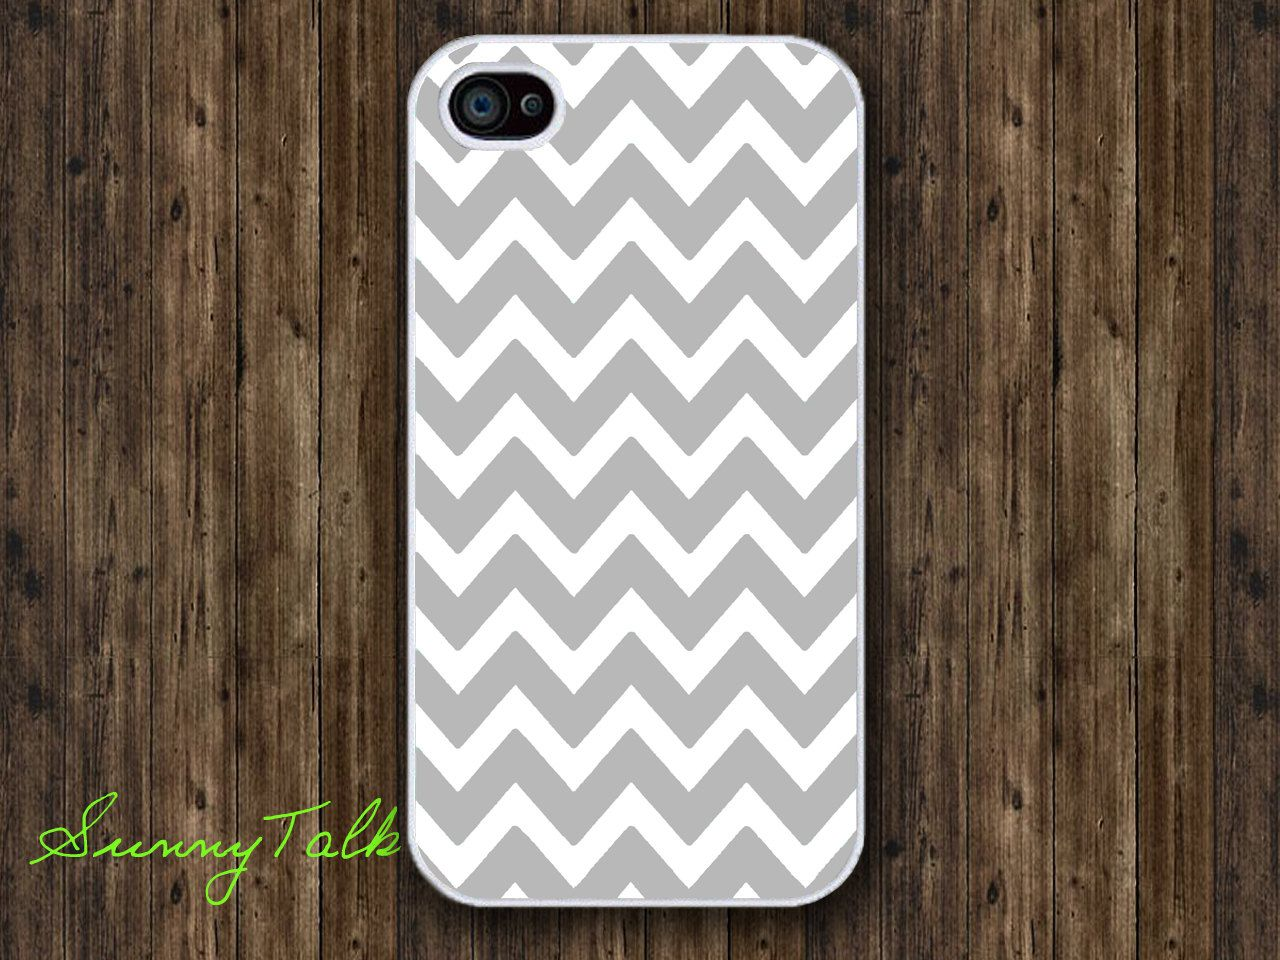 Iphone 4/4S Case - Grey Chevron on White Iphone 4 Case, Iphone 4S case, Waterproof Plastic Hard Case. $6.99, via Etsy.